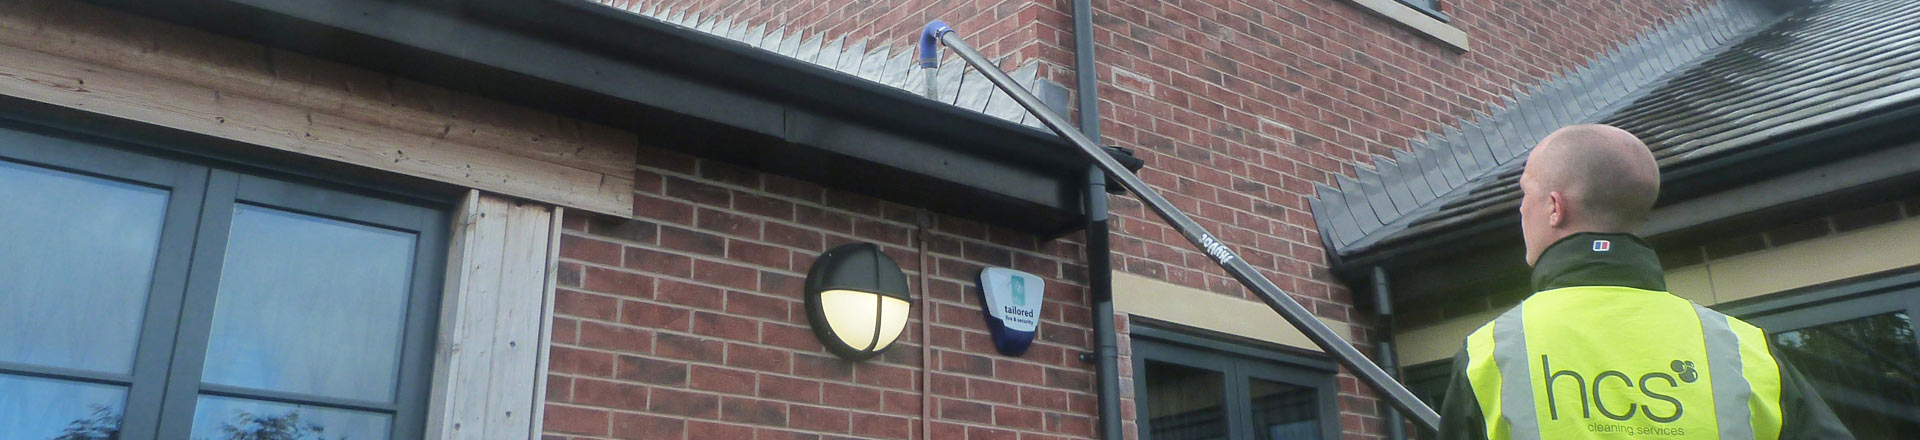 Gutter Cleaning in Manchester and the North West